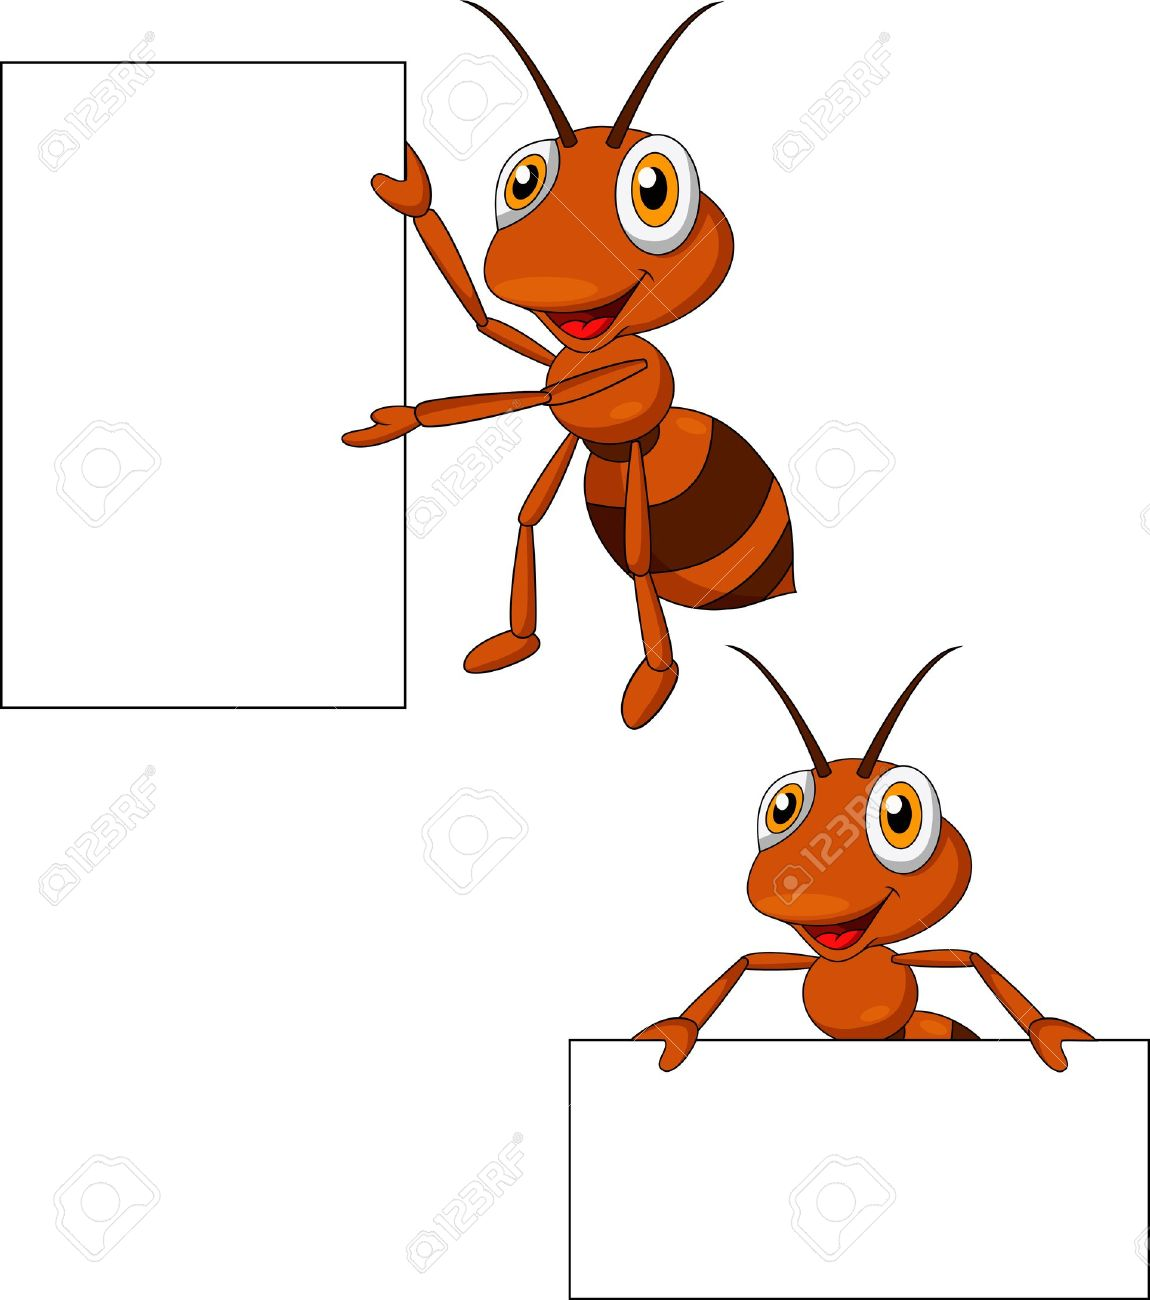 1 243 smiling ant stock illustrations cliparts and royalty free